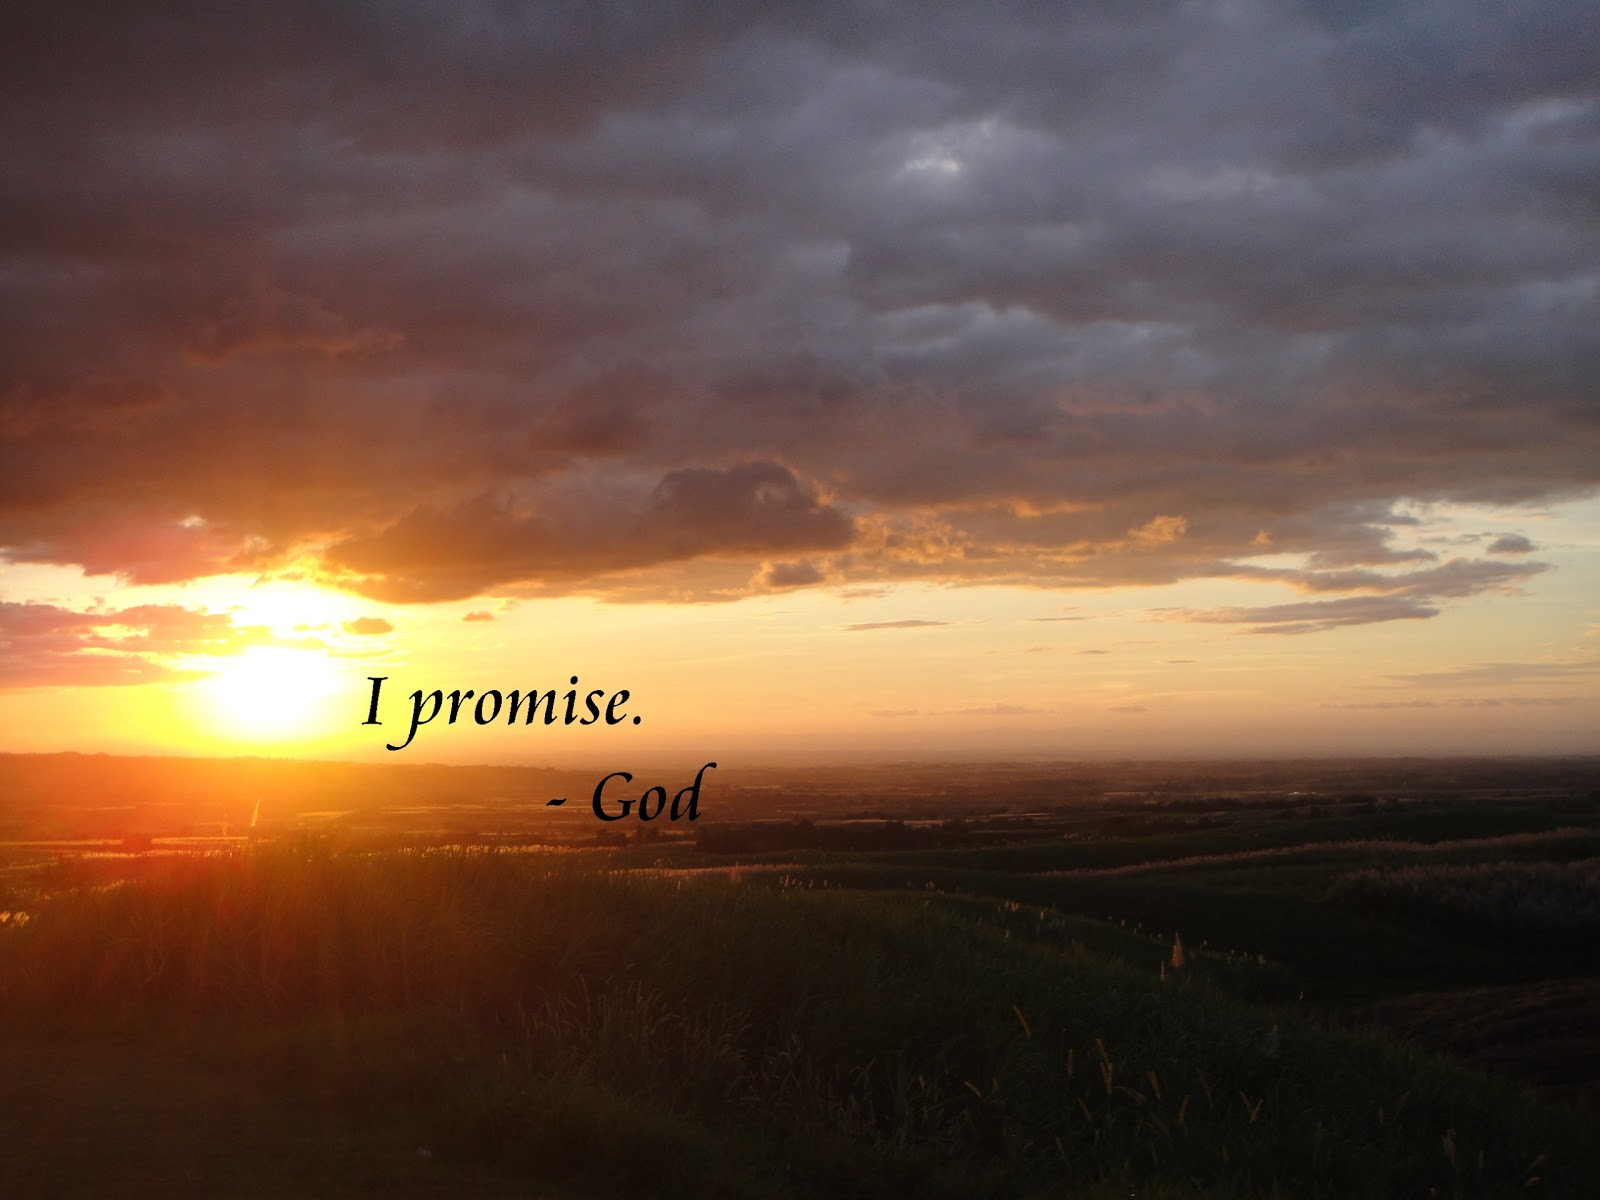 God's Promises - Verses in the Bible